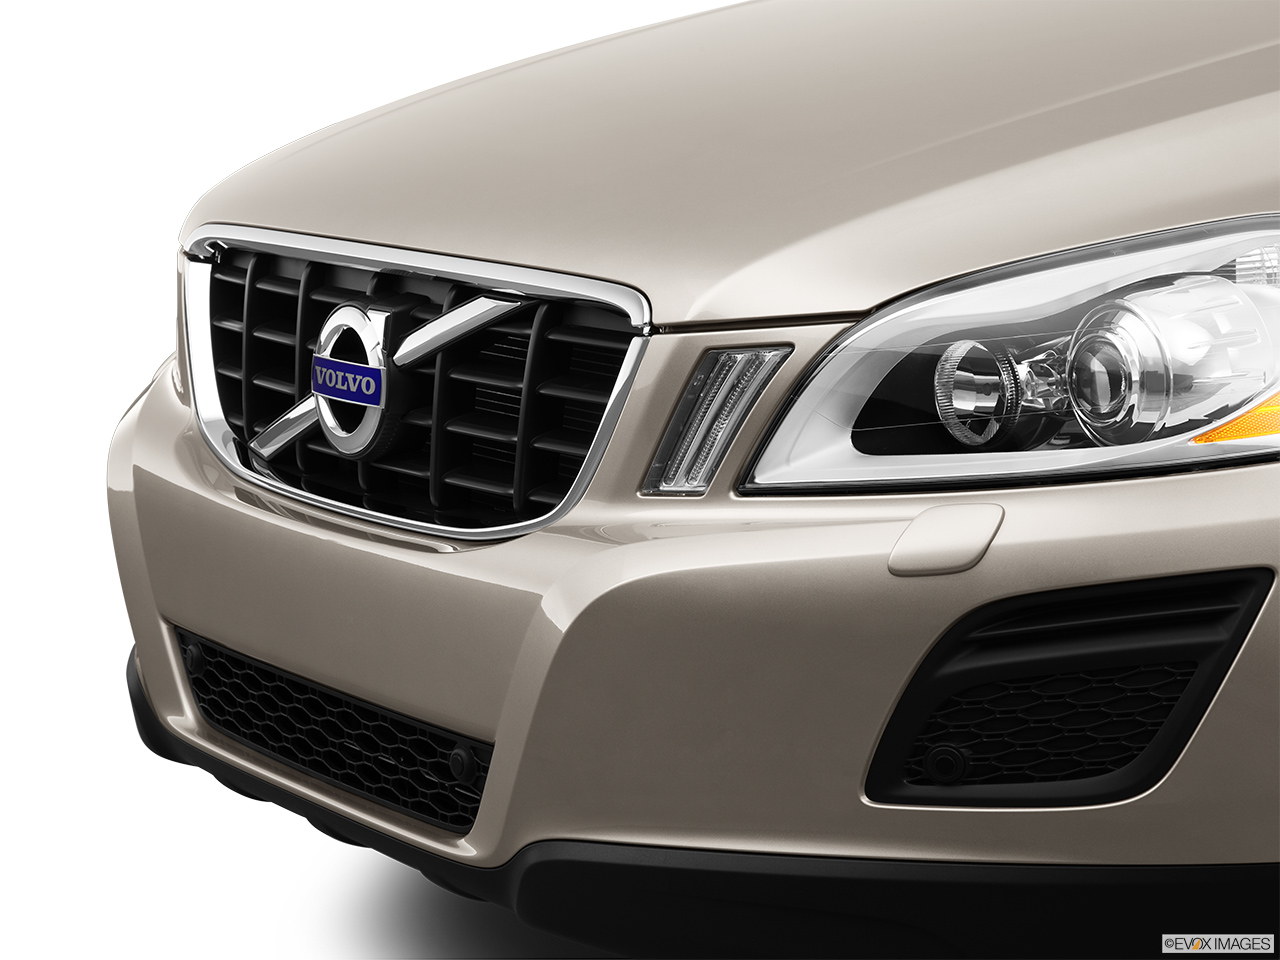 2013 Volvo XC60 3.2 FWD Premier Plus Close up of Grill.